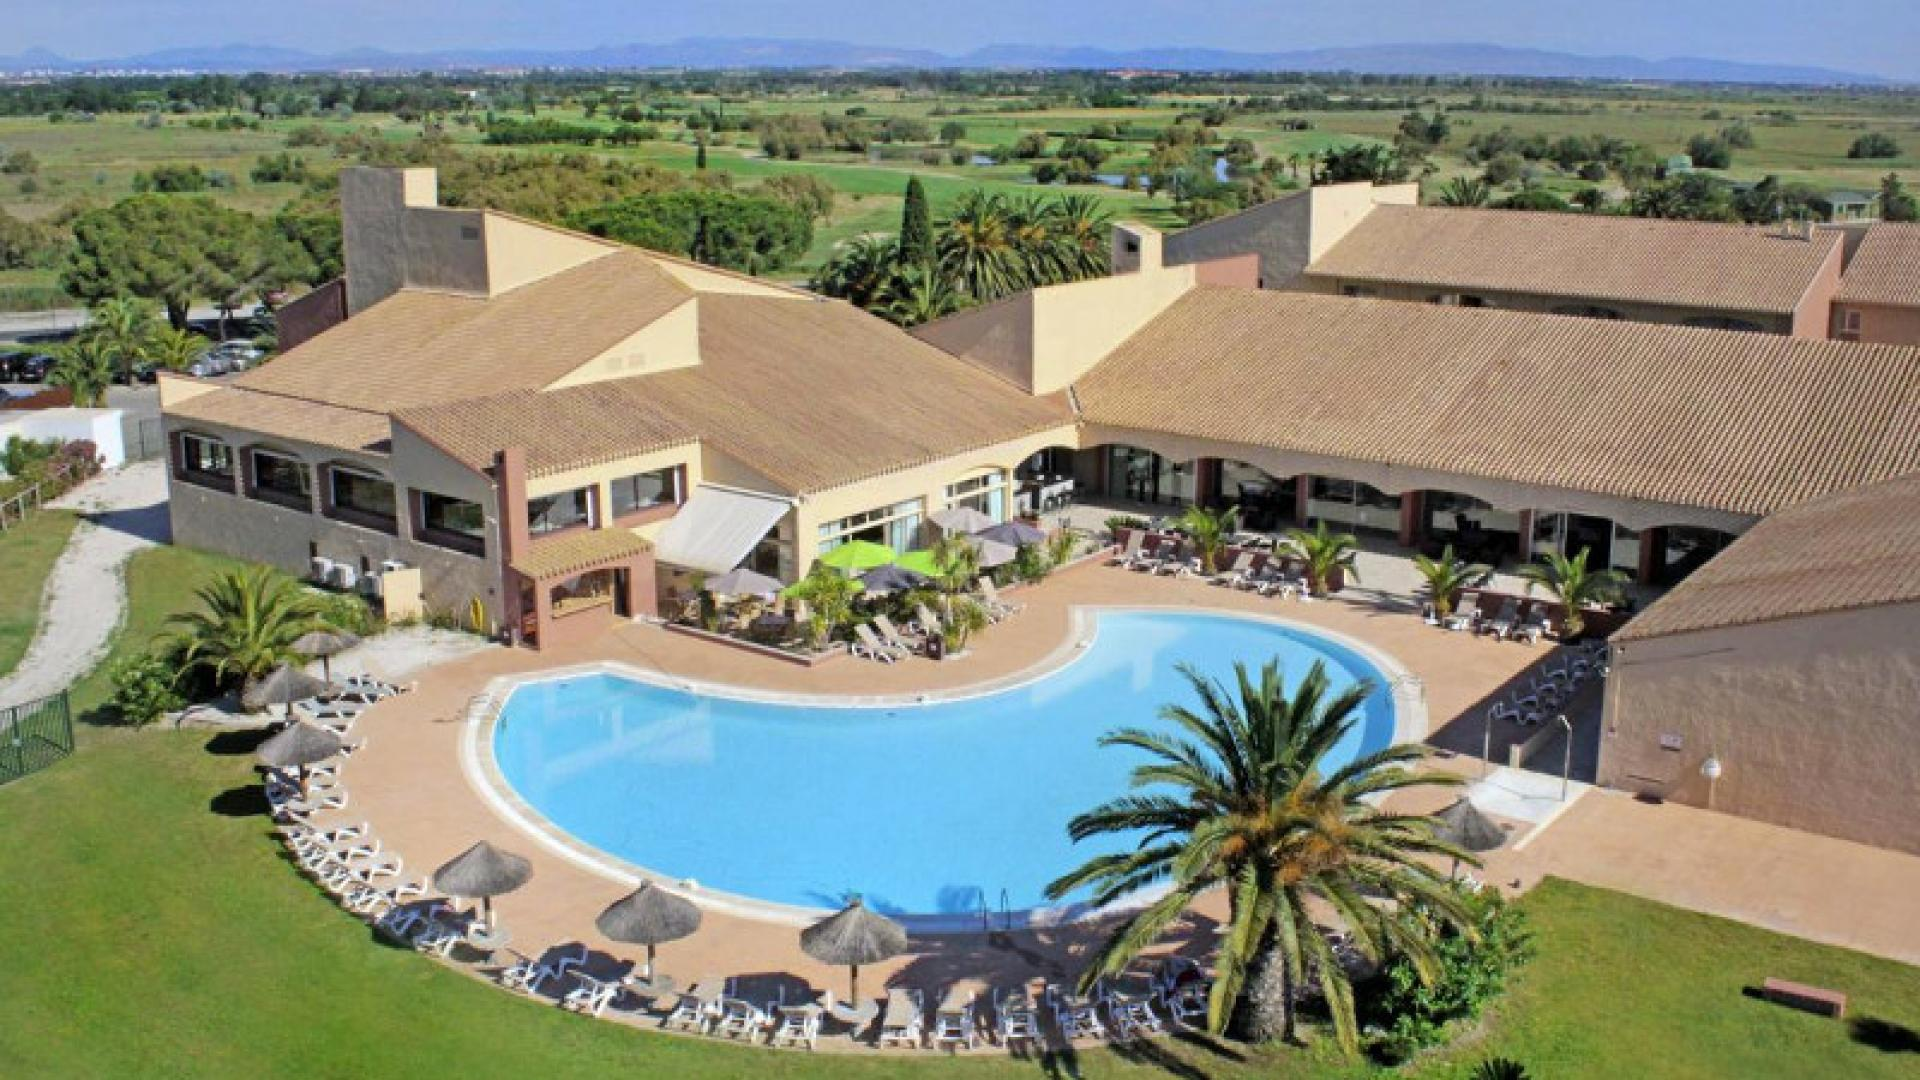 HOTEL LE MAS D'HUSTON GOLF ET SPA